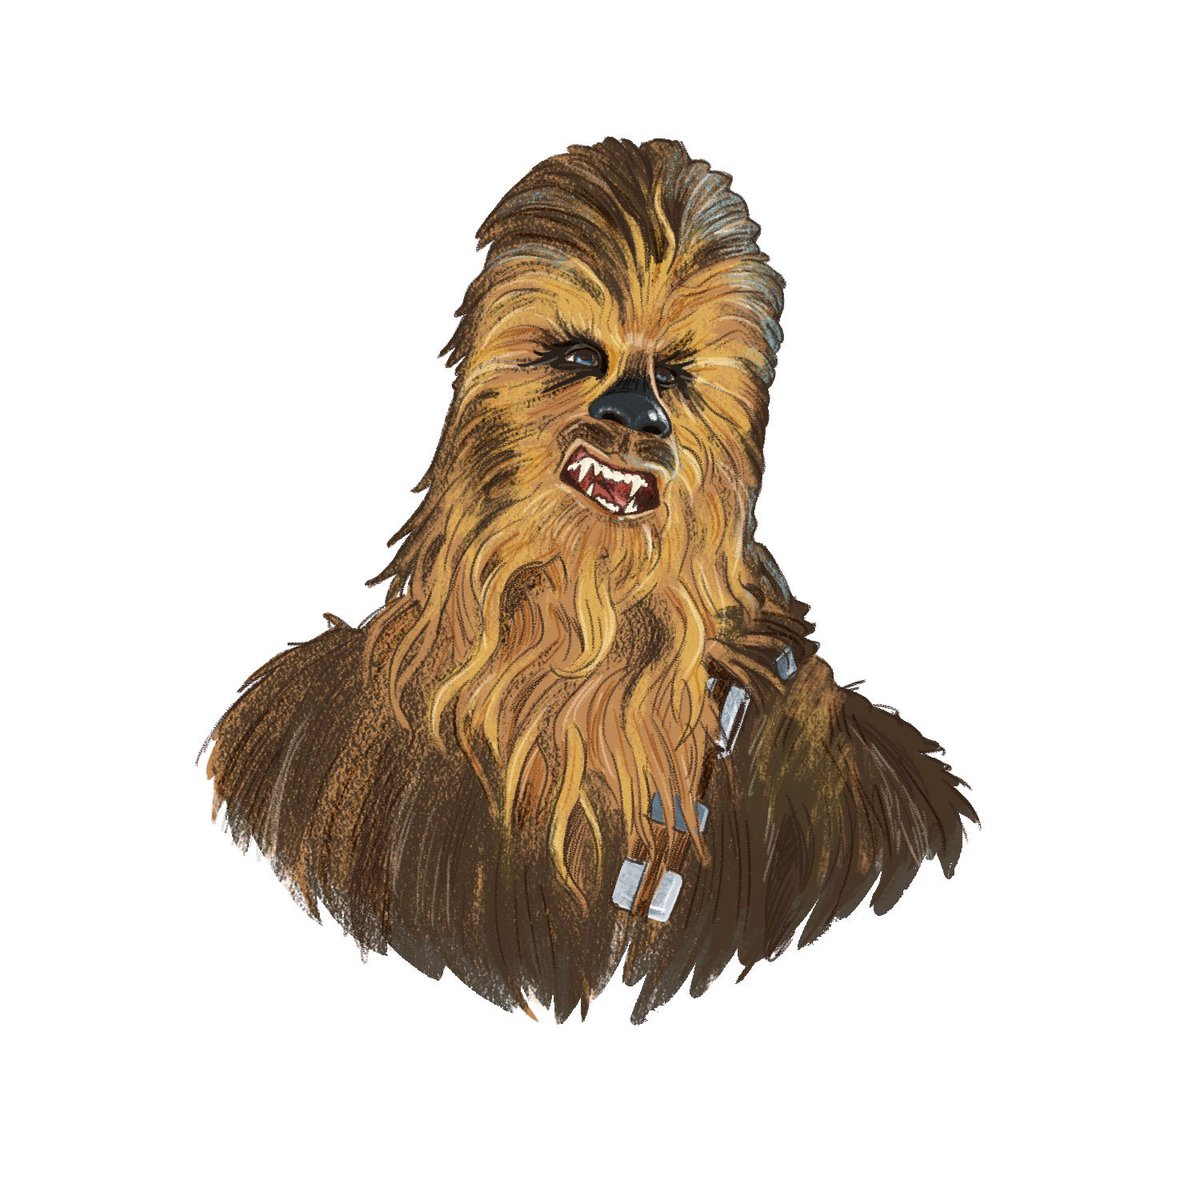 Some people get late night munchies. I get late night Chewie. (Part of a larger piece I'm working on.)#chewbacca #wookiee #starwars #myart #digitalpainting